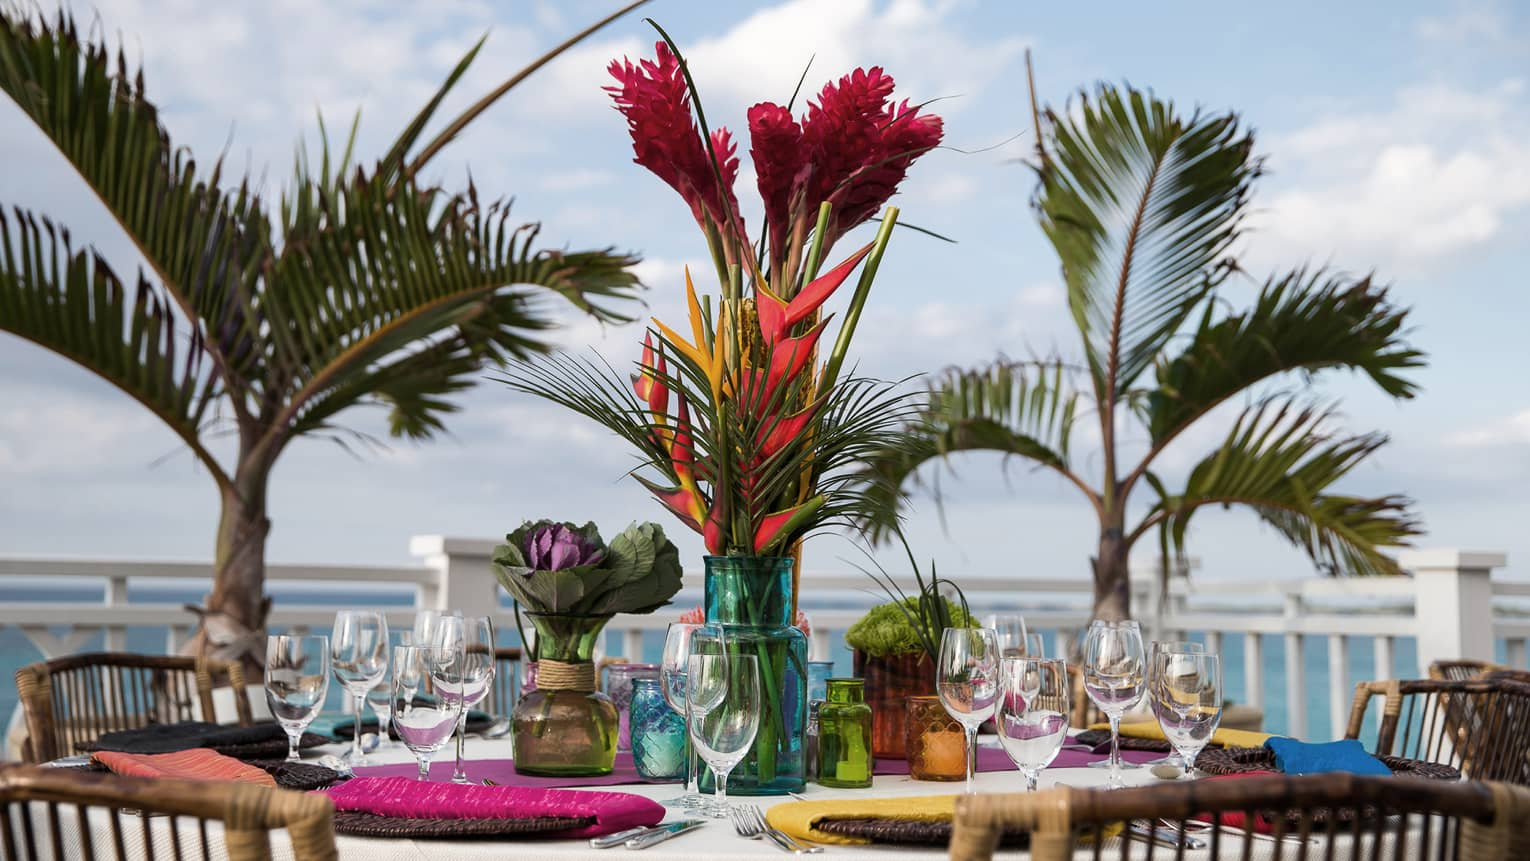 Brightly colored place settings and flowers adorn a a table, outside beside palm trees